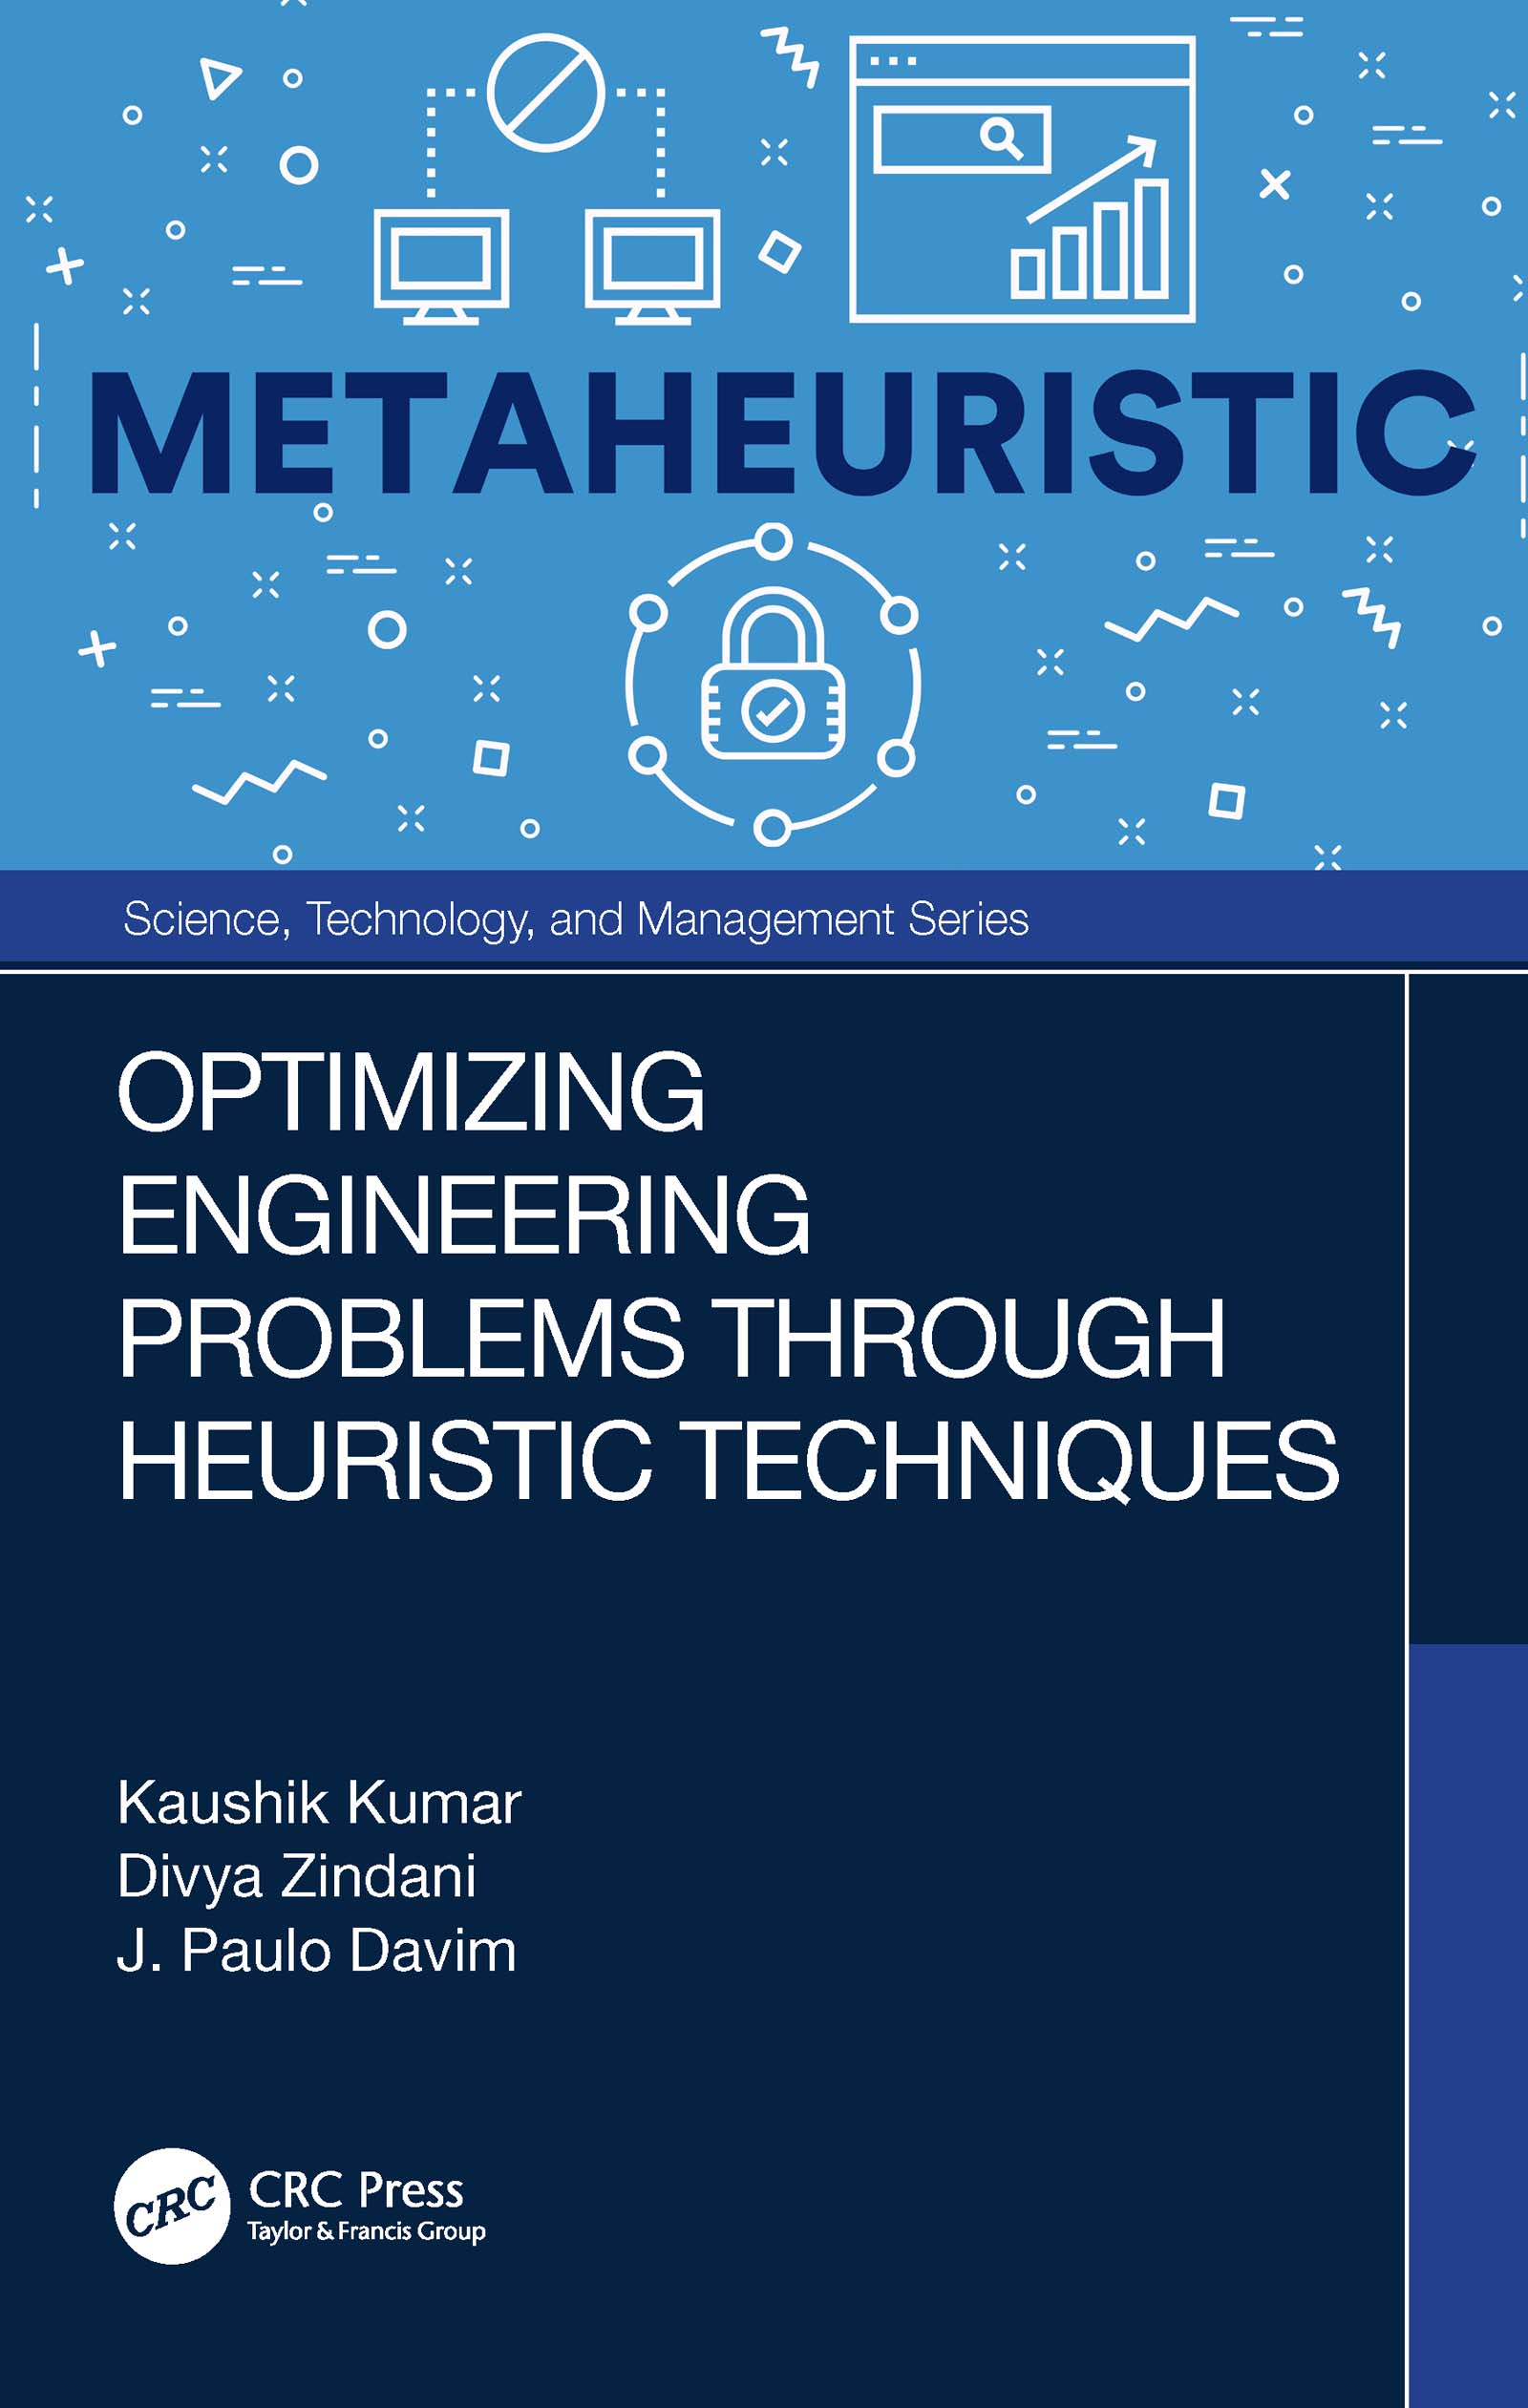 Optimizing Engineering Problems through Heuristic Techniques